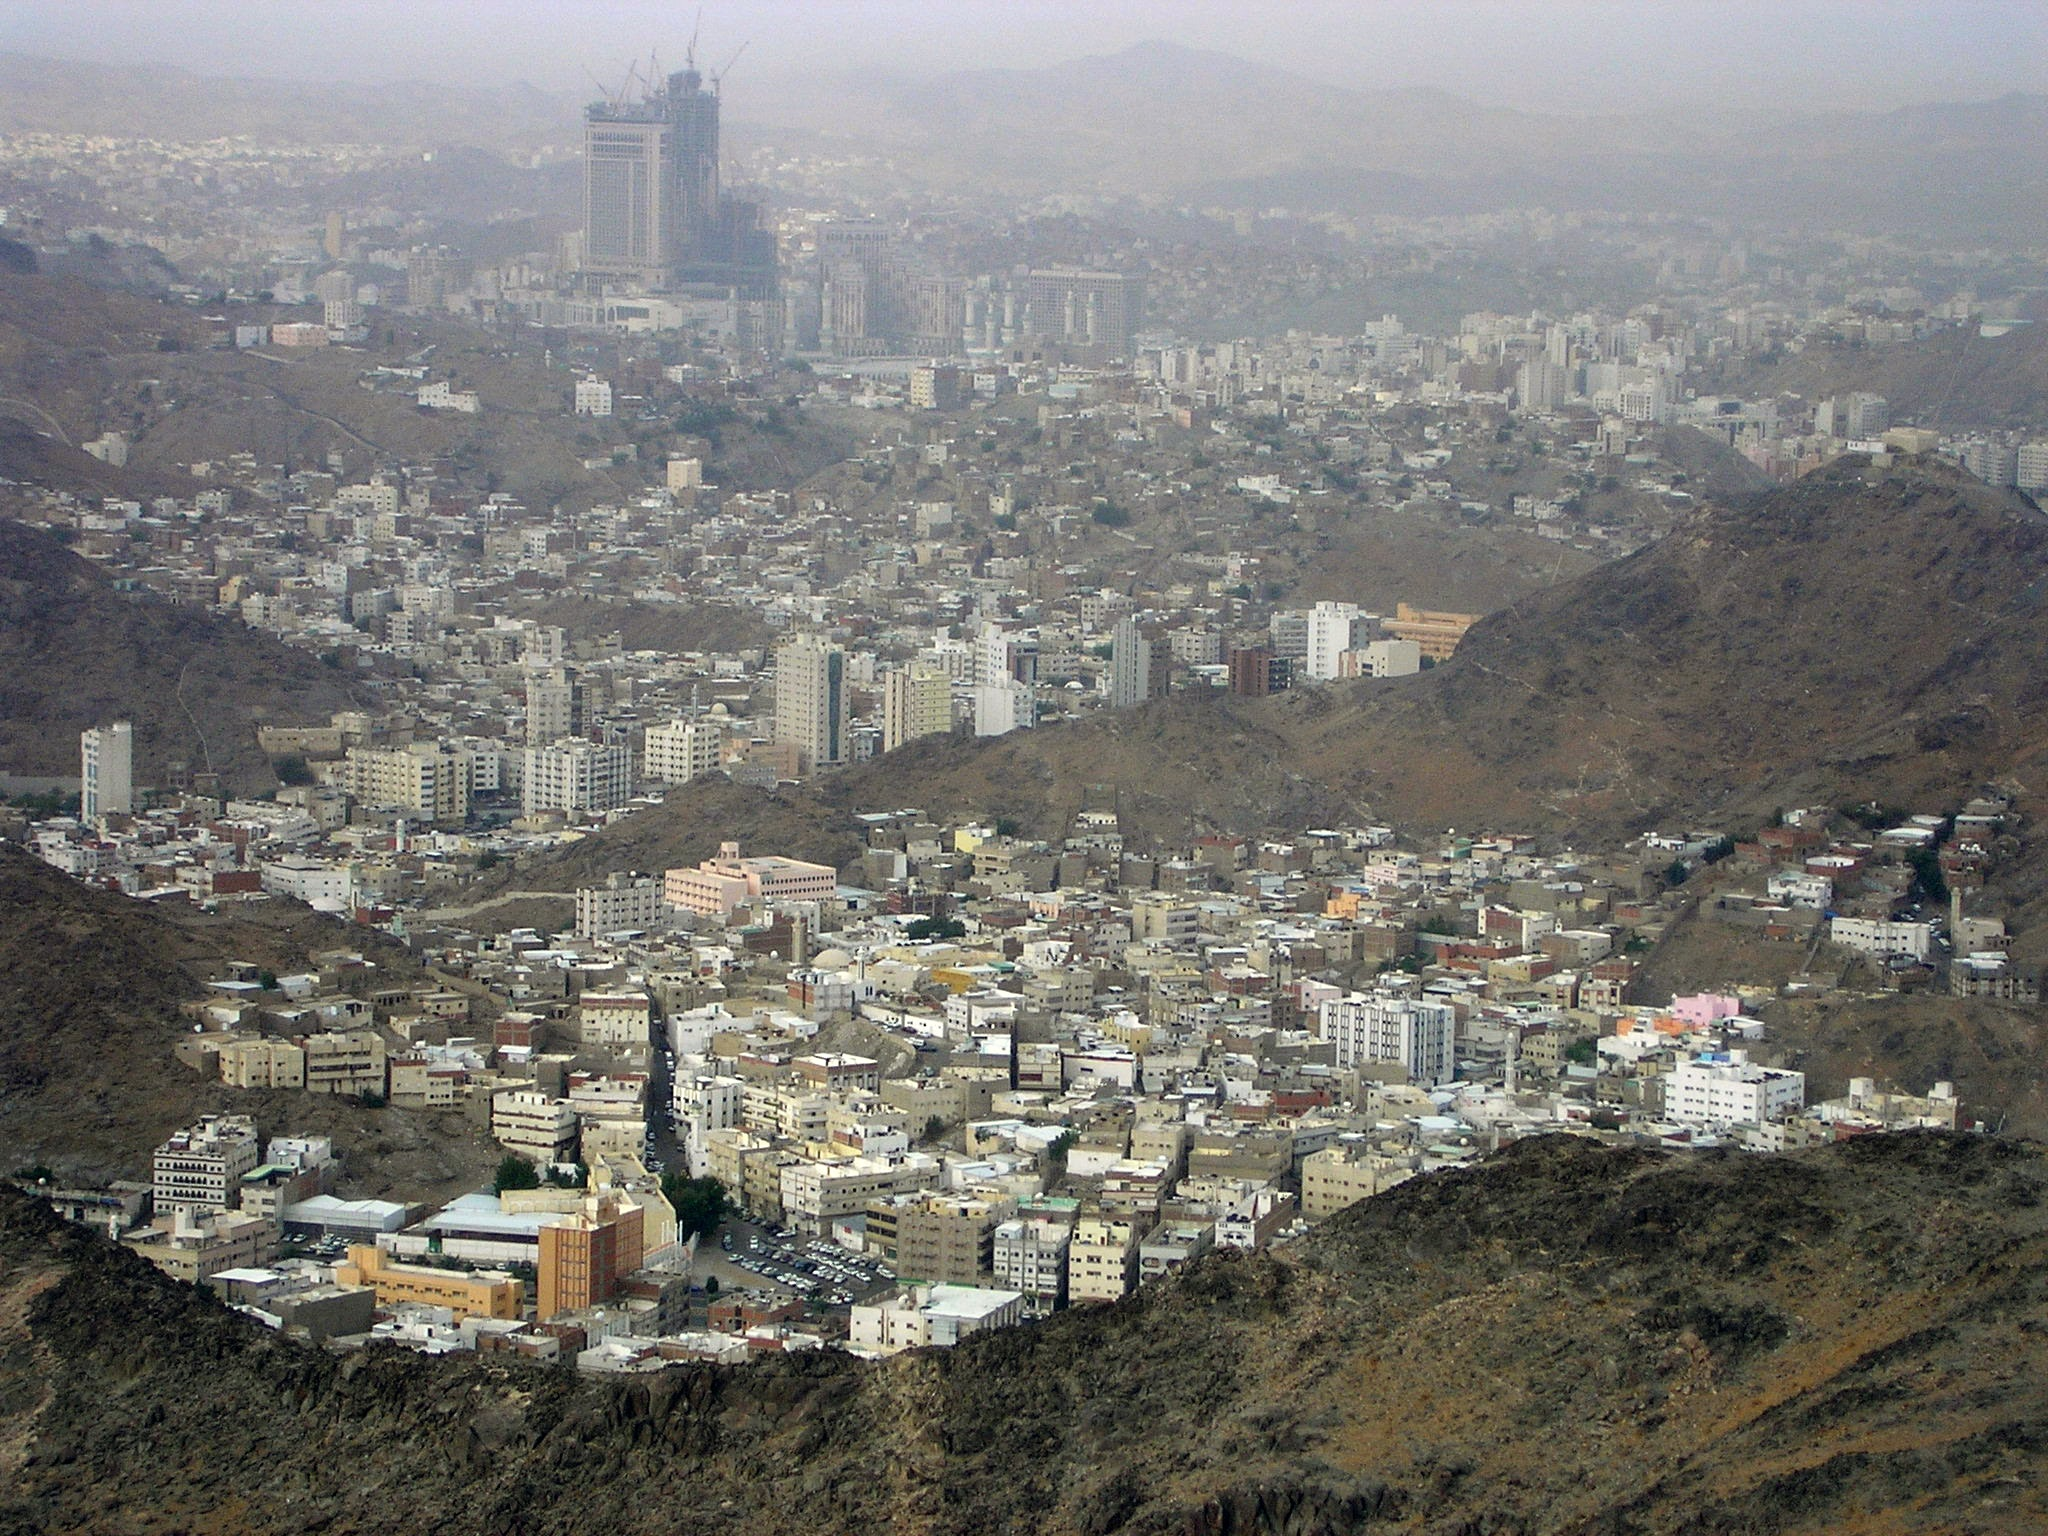 mecca and riyadh municipality Municipal authorities say they are investigating after claims of excessive force by member of the local security forces.